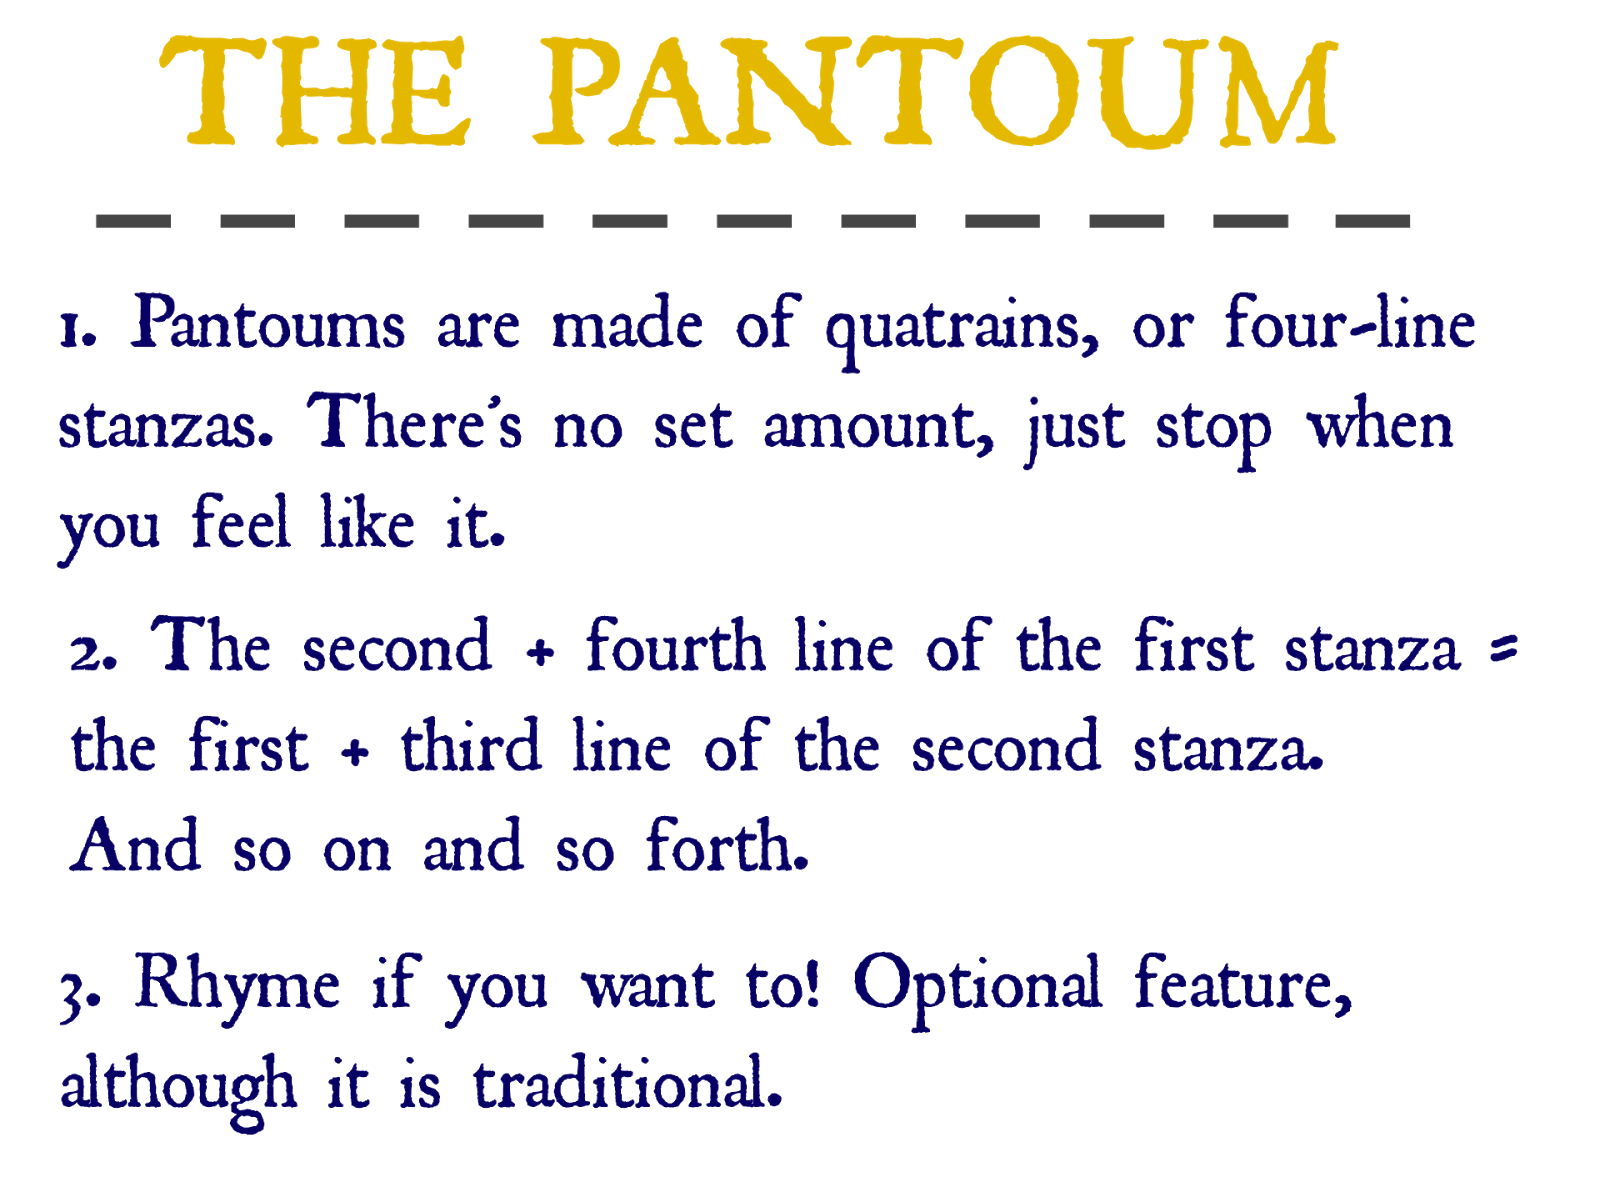 pantoum poem The contemporary western version of the pantoum is a poem made up of stanzas whose four lines repeat in a pattern: lines 2 and 4 of each stanza are repeated, whole, as lines 1 and 3 of the next stanza, and so on.